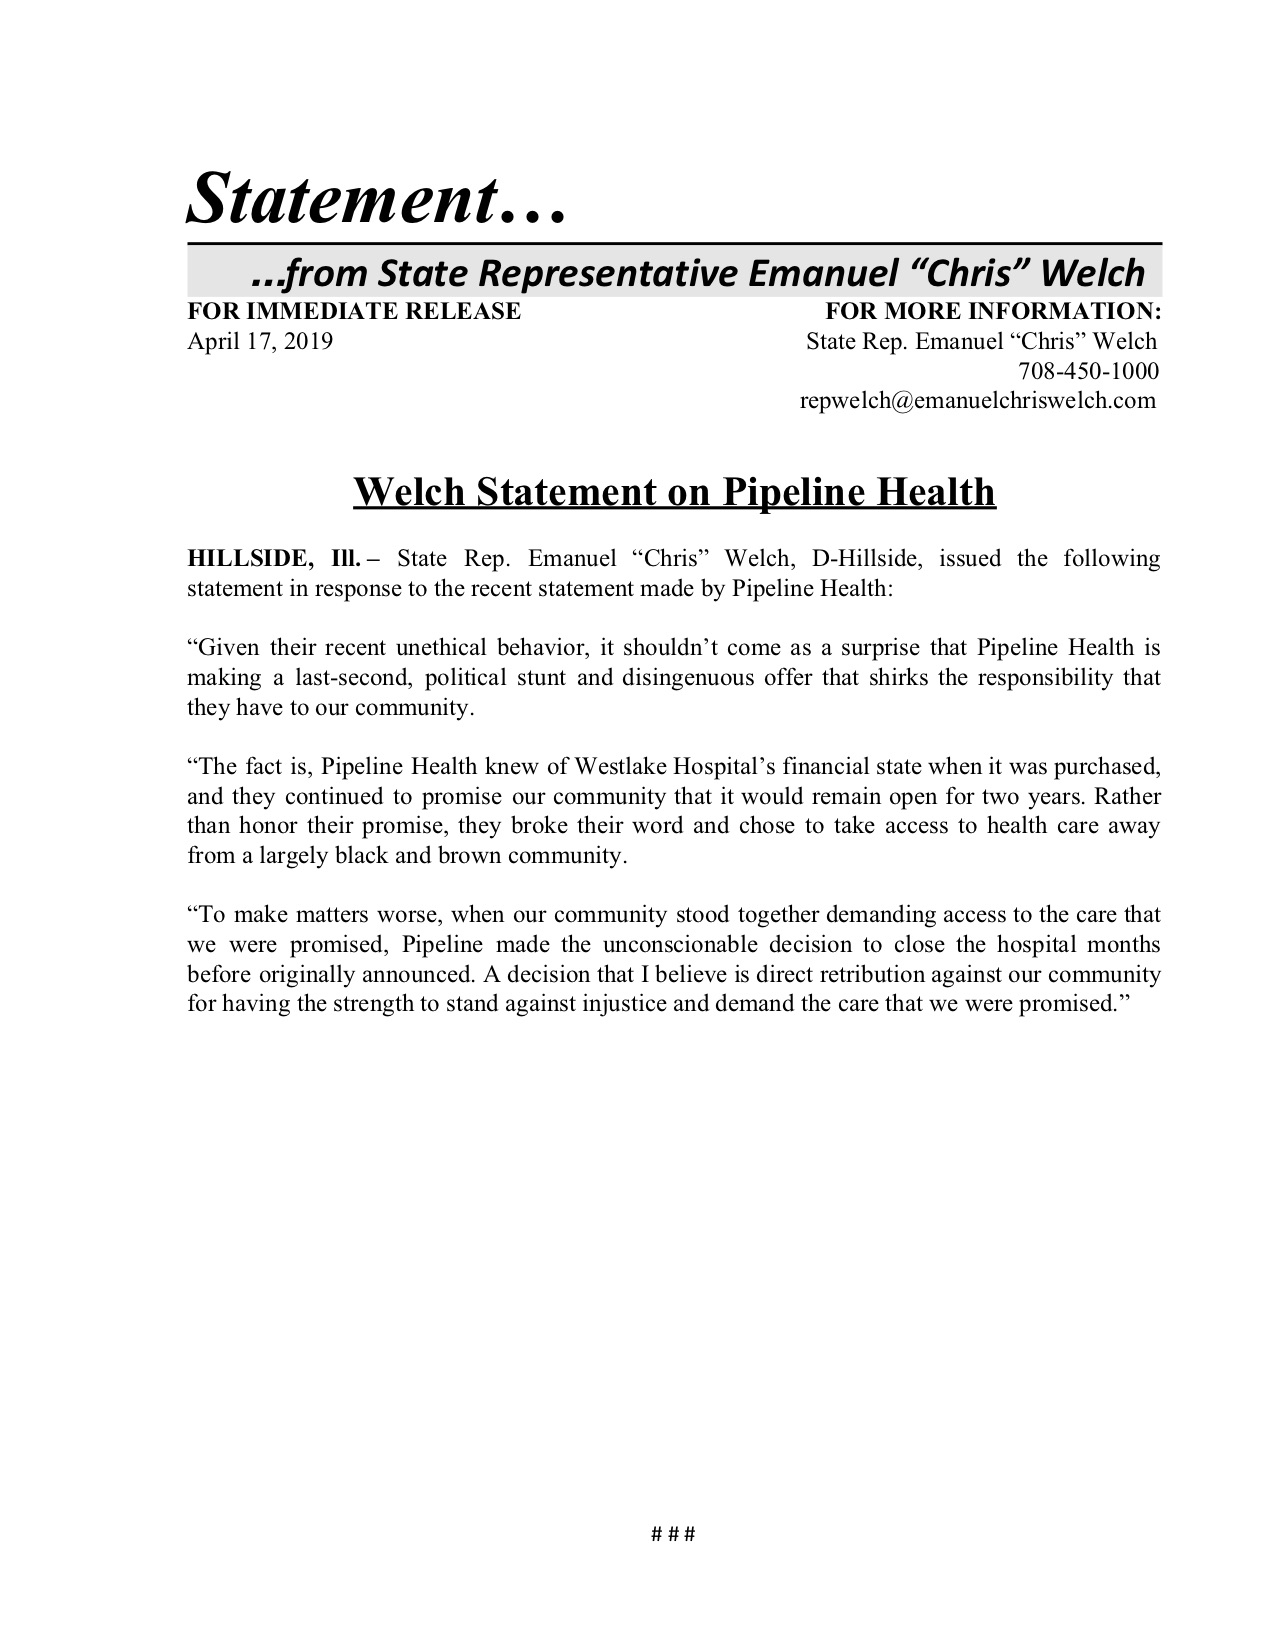 Welch Statement on Pipeline Health  (April 17, 2019)